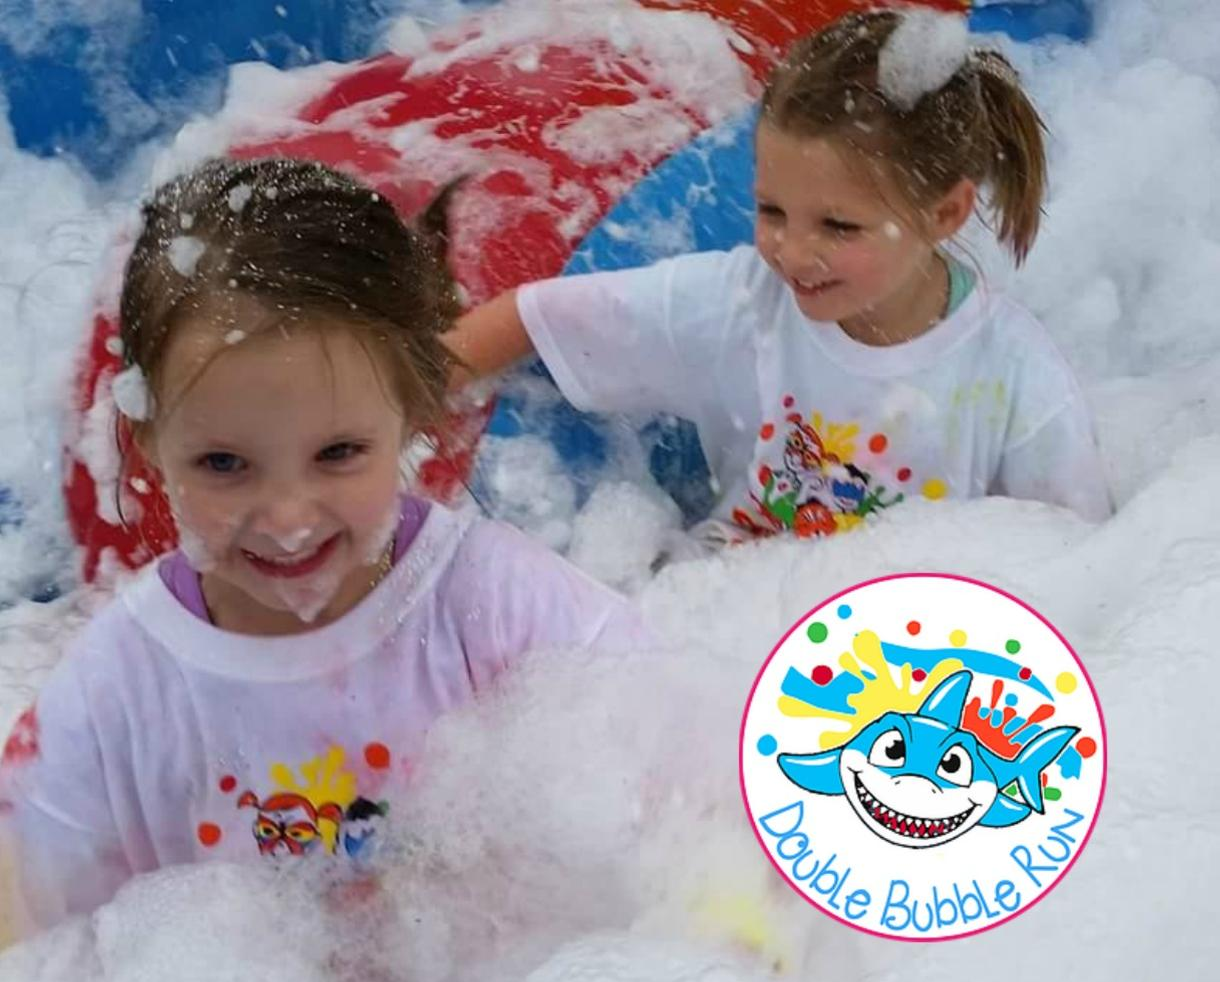 $29 for 1 Adult & 1 Child Admission to the Double Bubble Fun Run OR $55 for 2 Adults & 2 Children - Ages 2+ in Frederick, MD and Fairfax VA (52% Off)